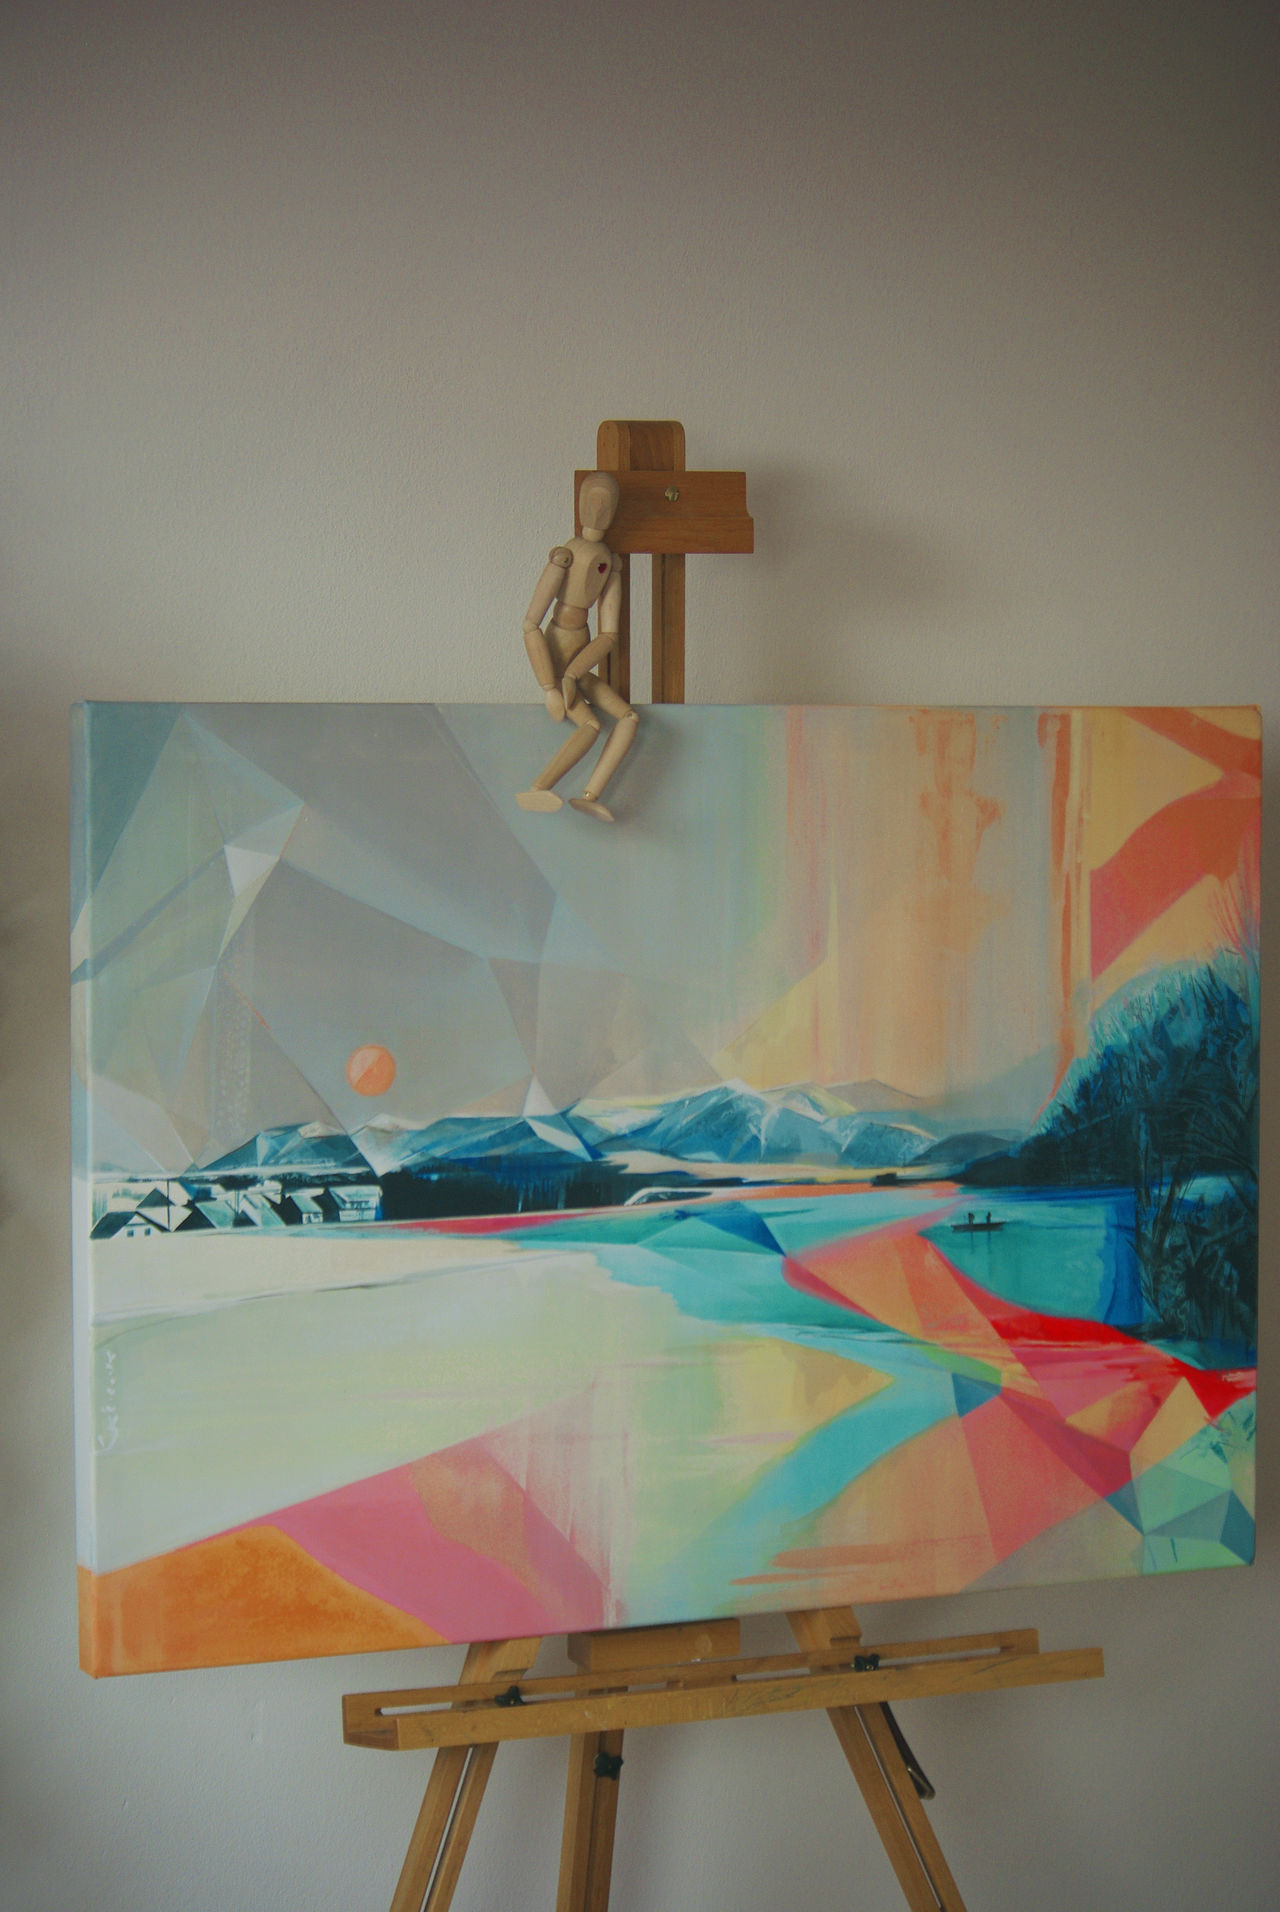 Abstract Landscape Acrylic Art ArtWork Display Easel Fine Art Painting Freshness Geometric Shapes Indoors  My Art, My Soul... My Artwork Painting Polygon lets meet on instagram too: @katkakacic